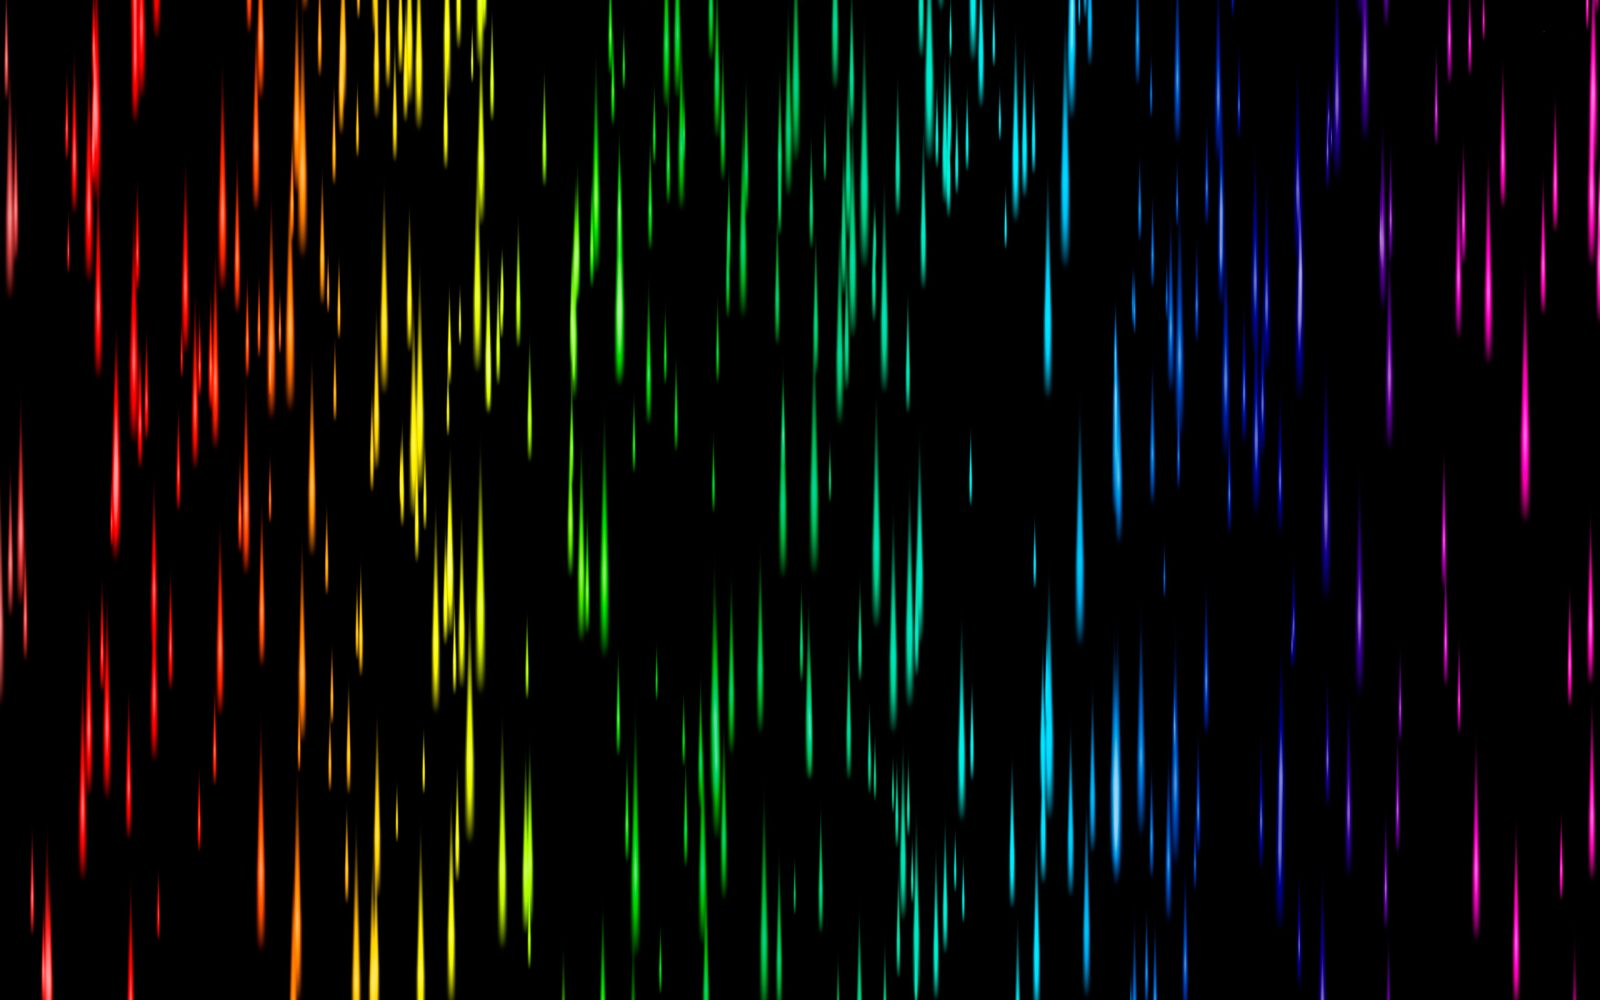 Abstract-HD-wallpaper-wpc5801945